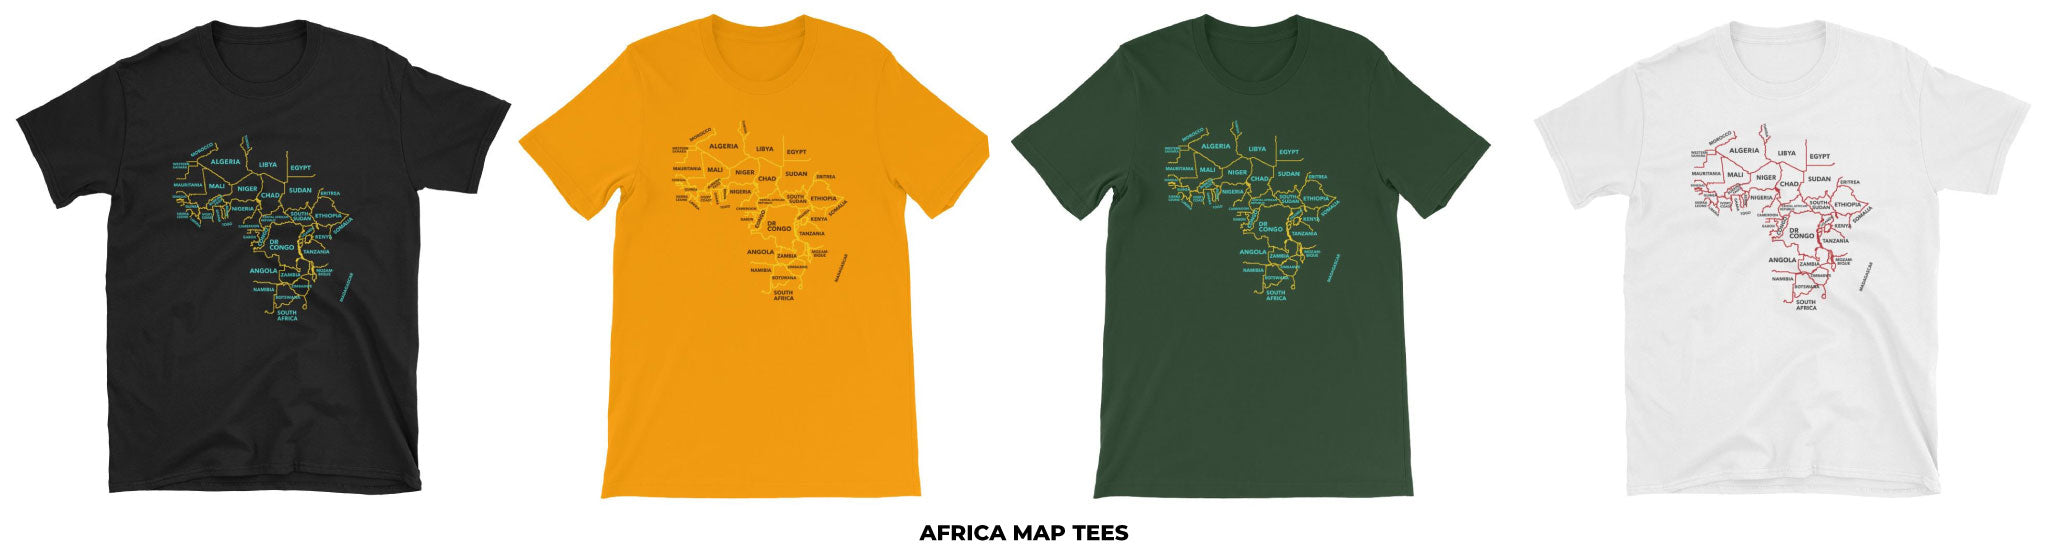 African & Black Pride Shirts, featuring the continent of Africa in a minimalist, line-based design. Represent the motherland in style. Shirts in black, yellow, green, and white.